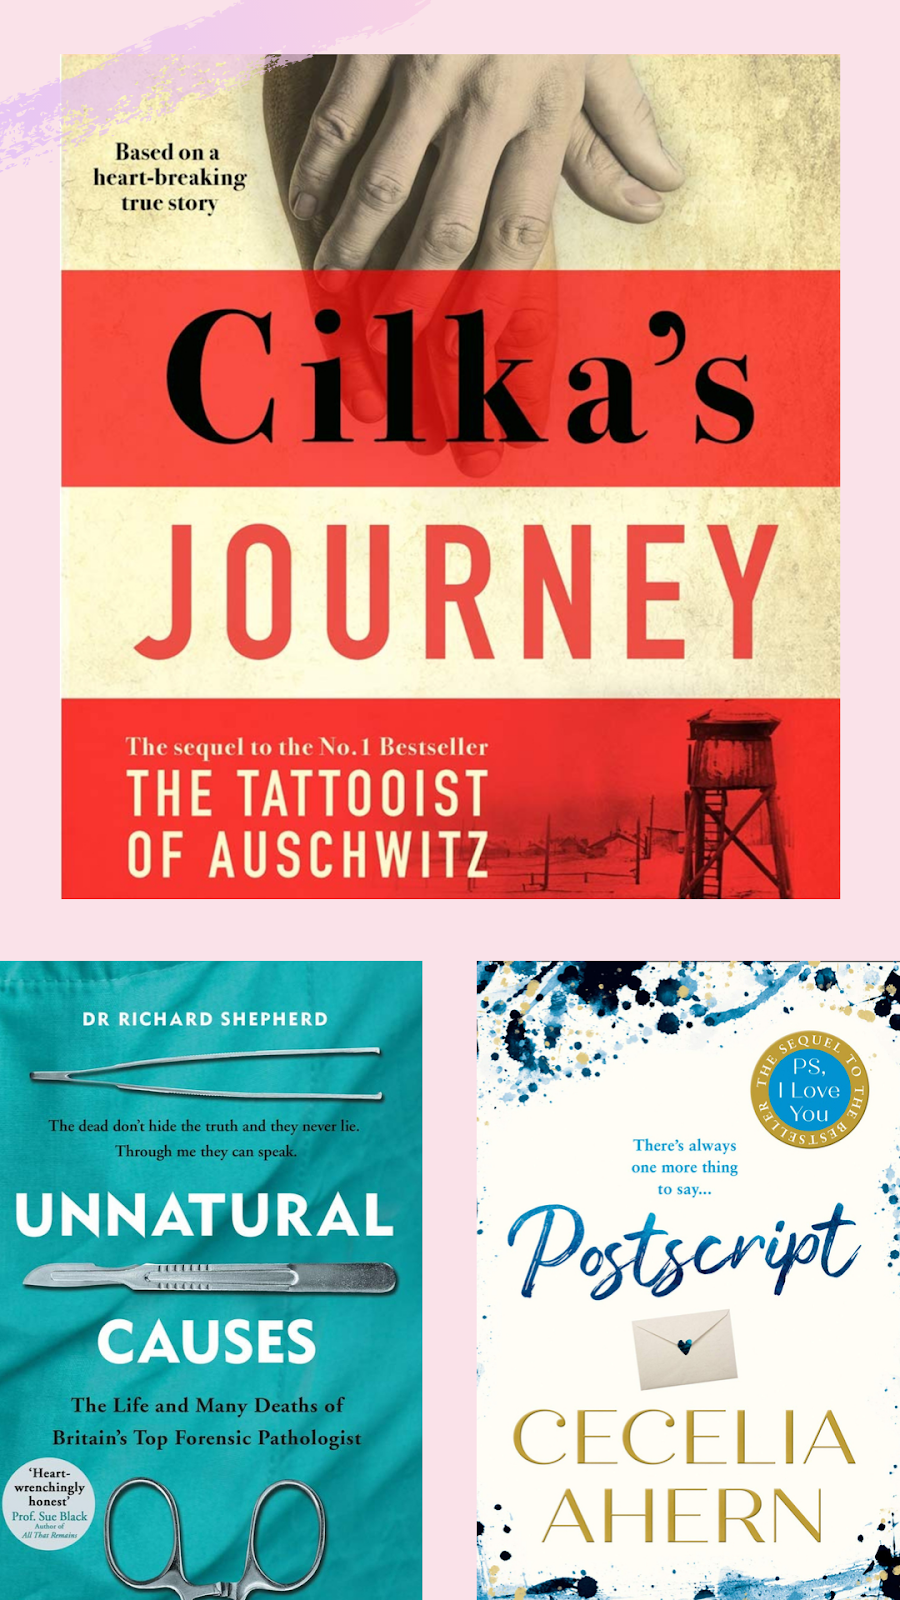 books - cilka's journey, postscript, unnatural causes